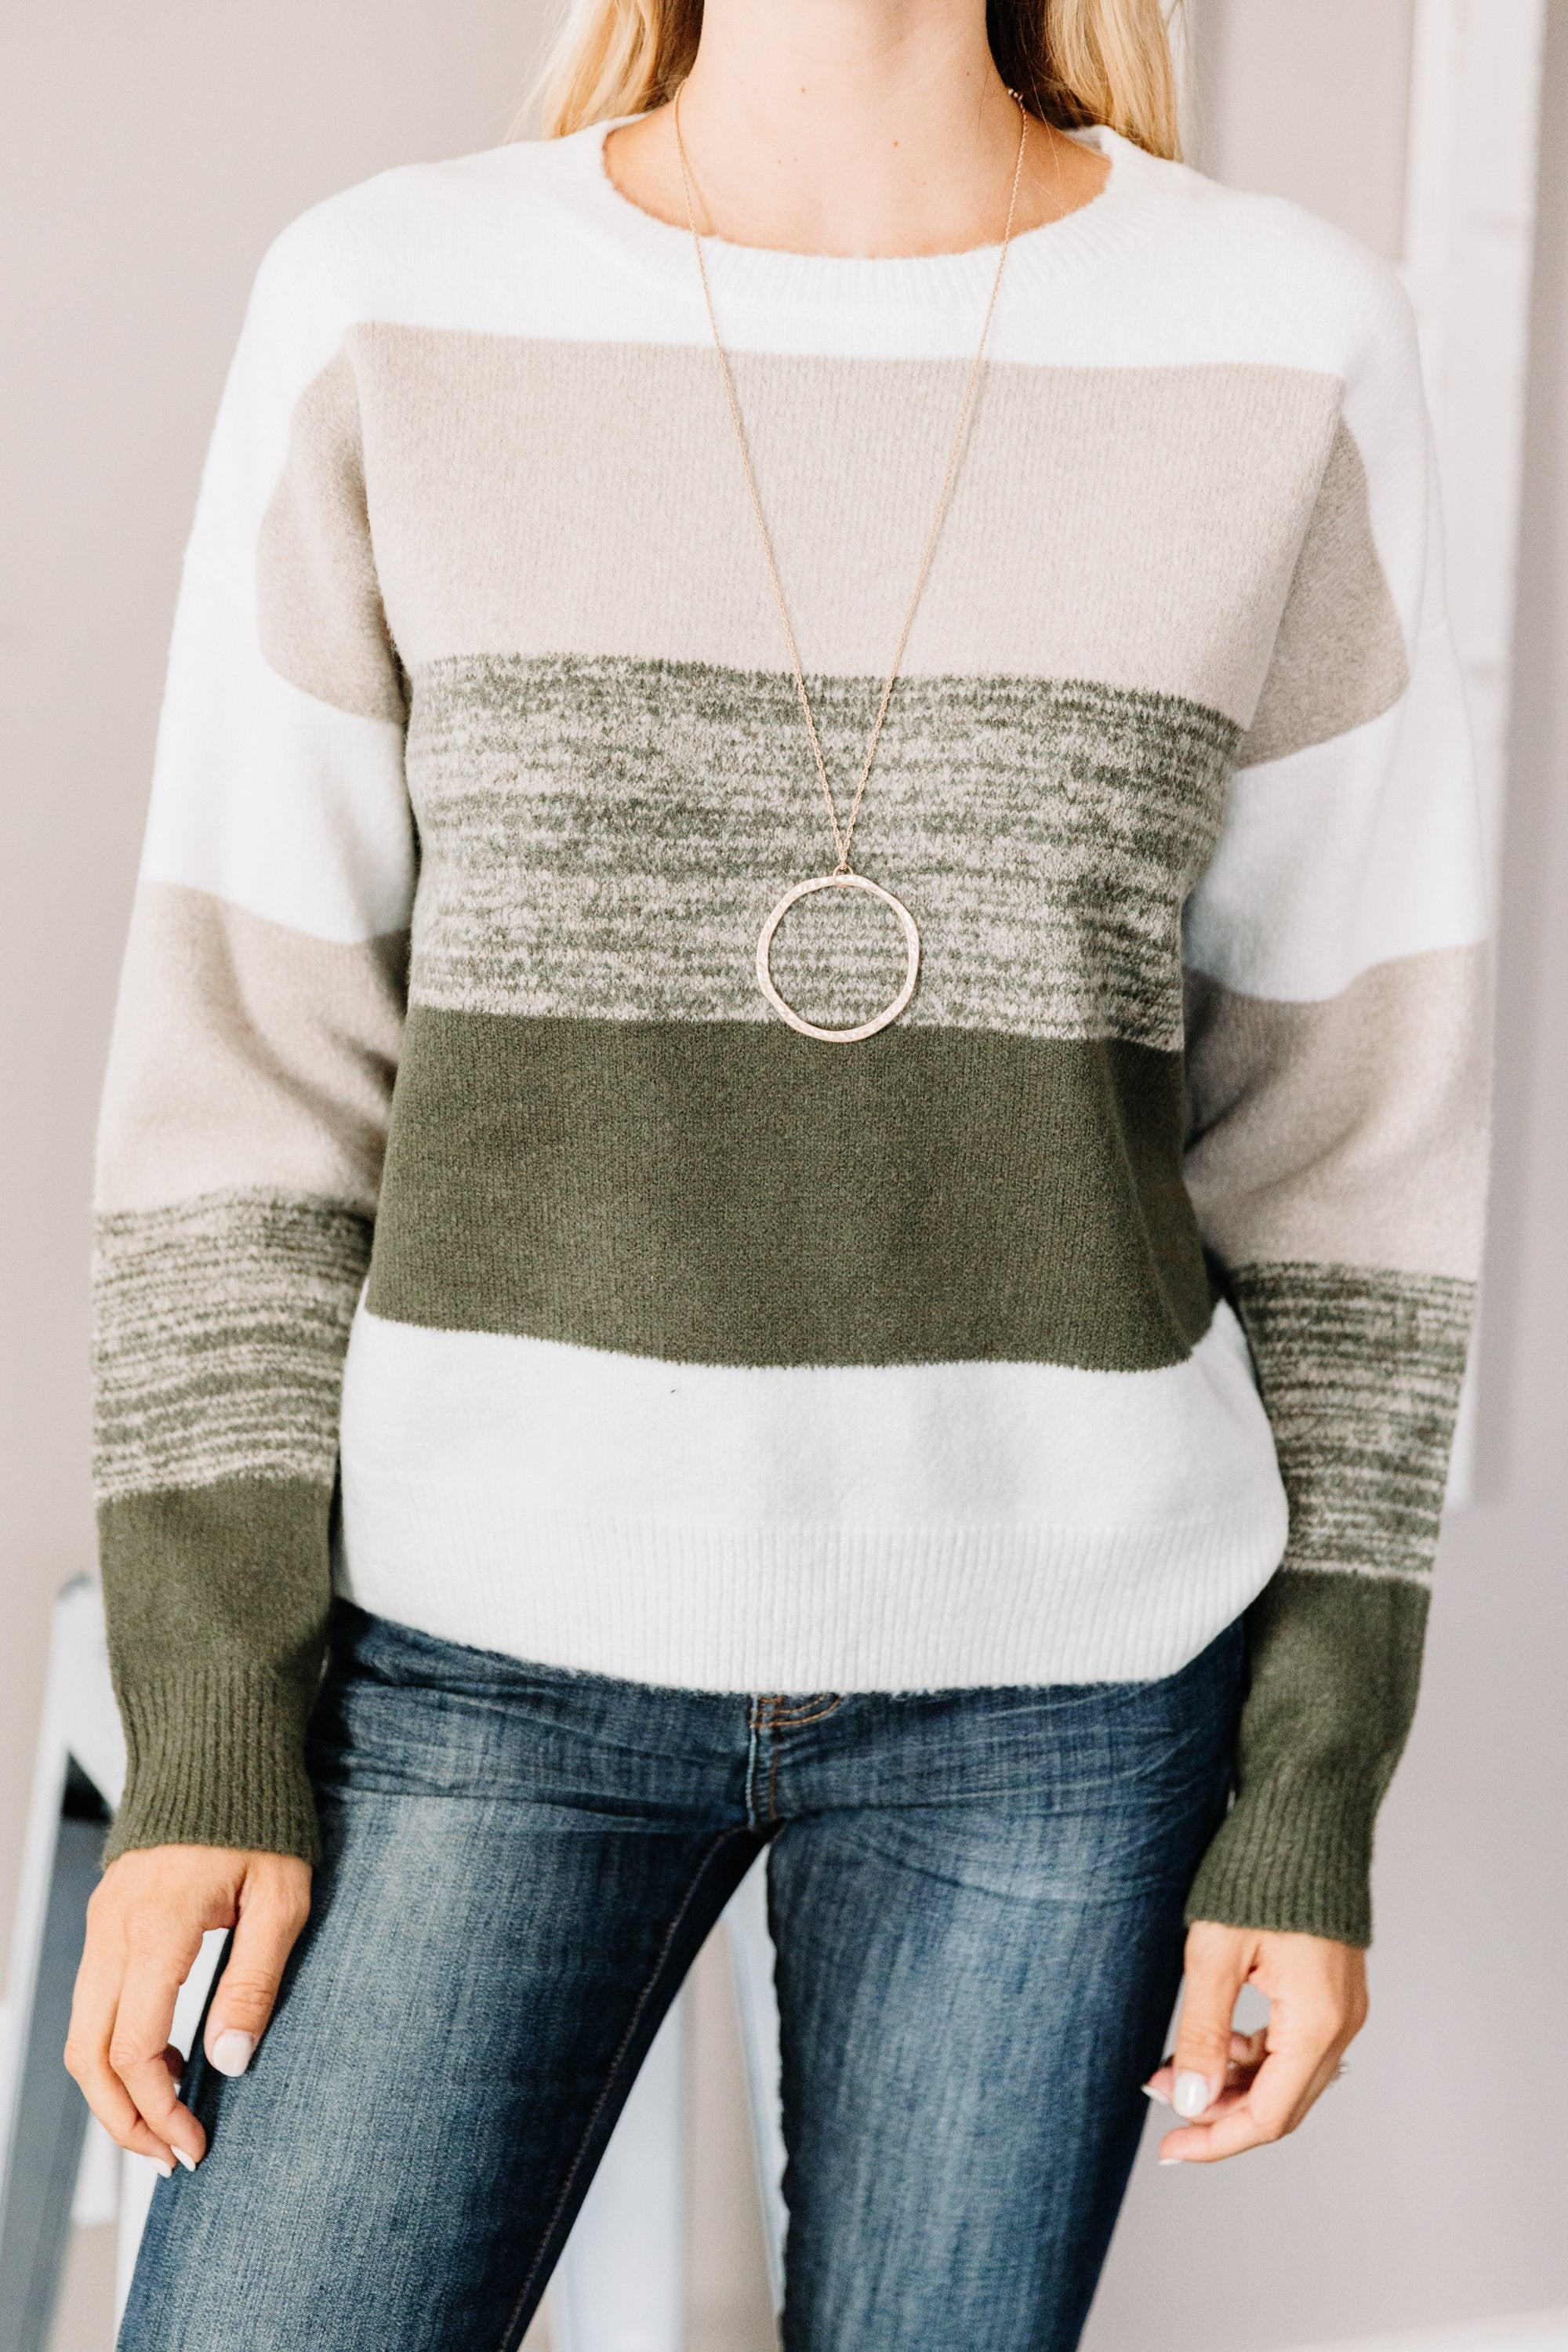 color block print, round neckline, long sleeves, olive green, sweater